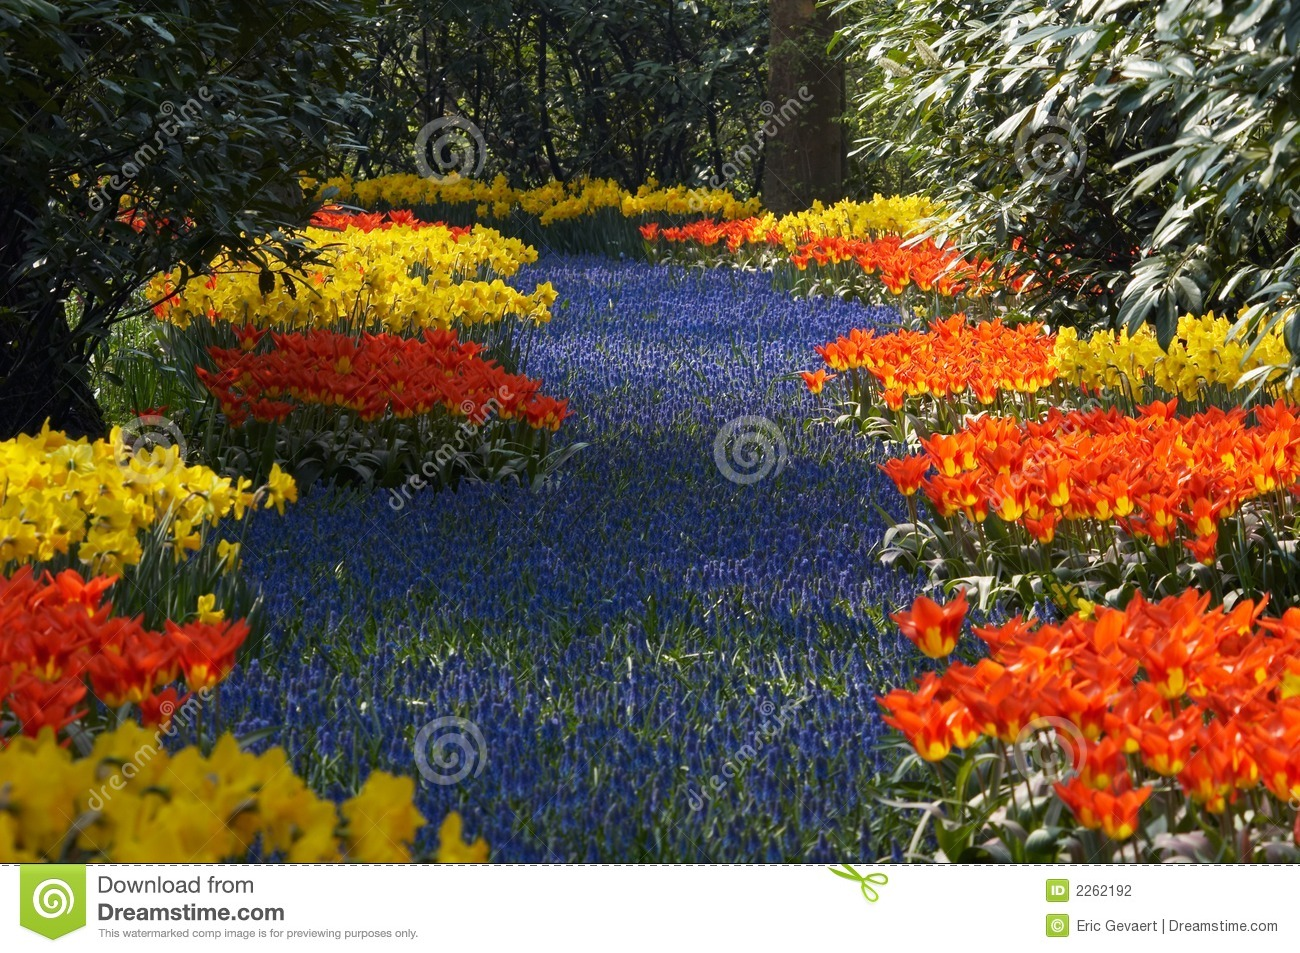 Jardin de fleur au printemps photo stock image du for Catalogue fleurs de jardin